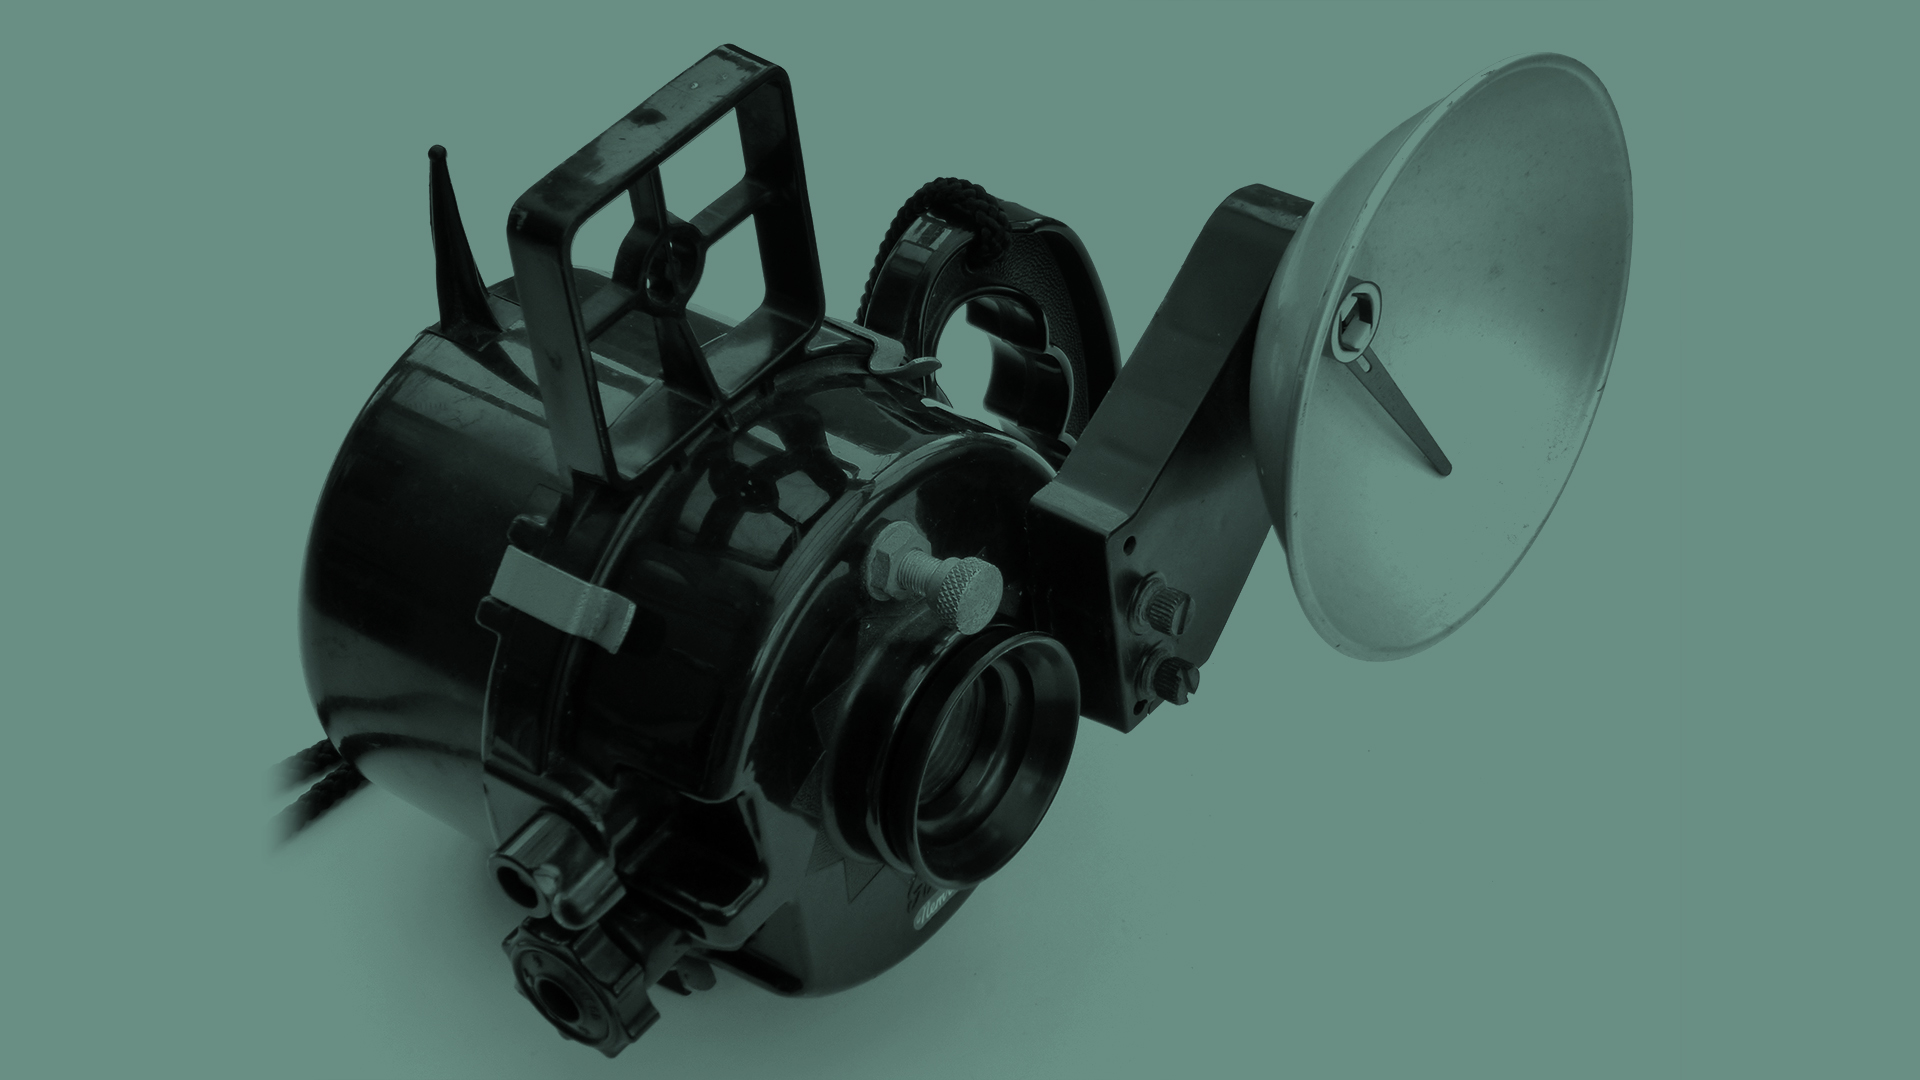 The front of the Nemrod Siluro underwater camera on a green background